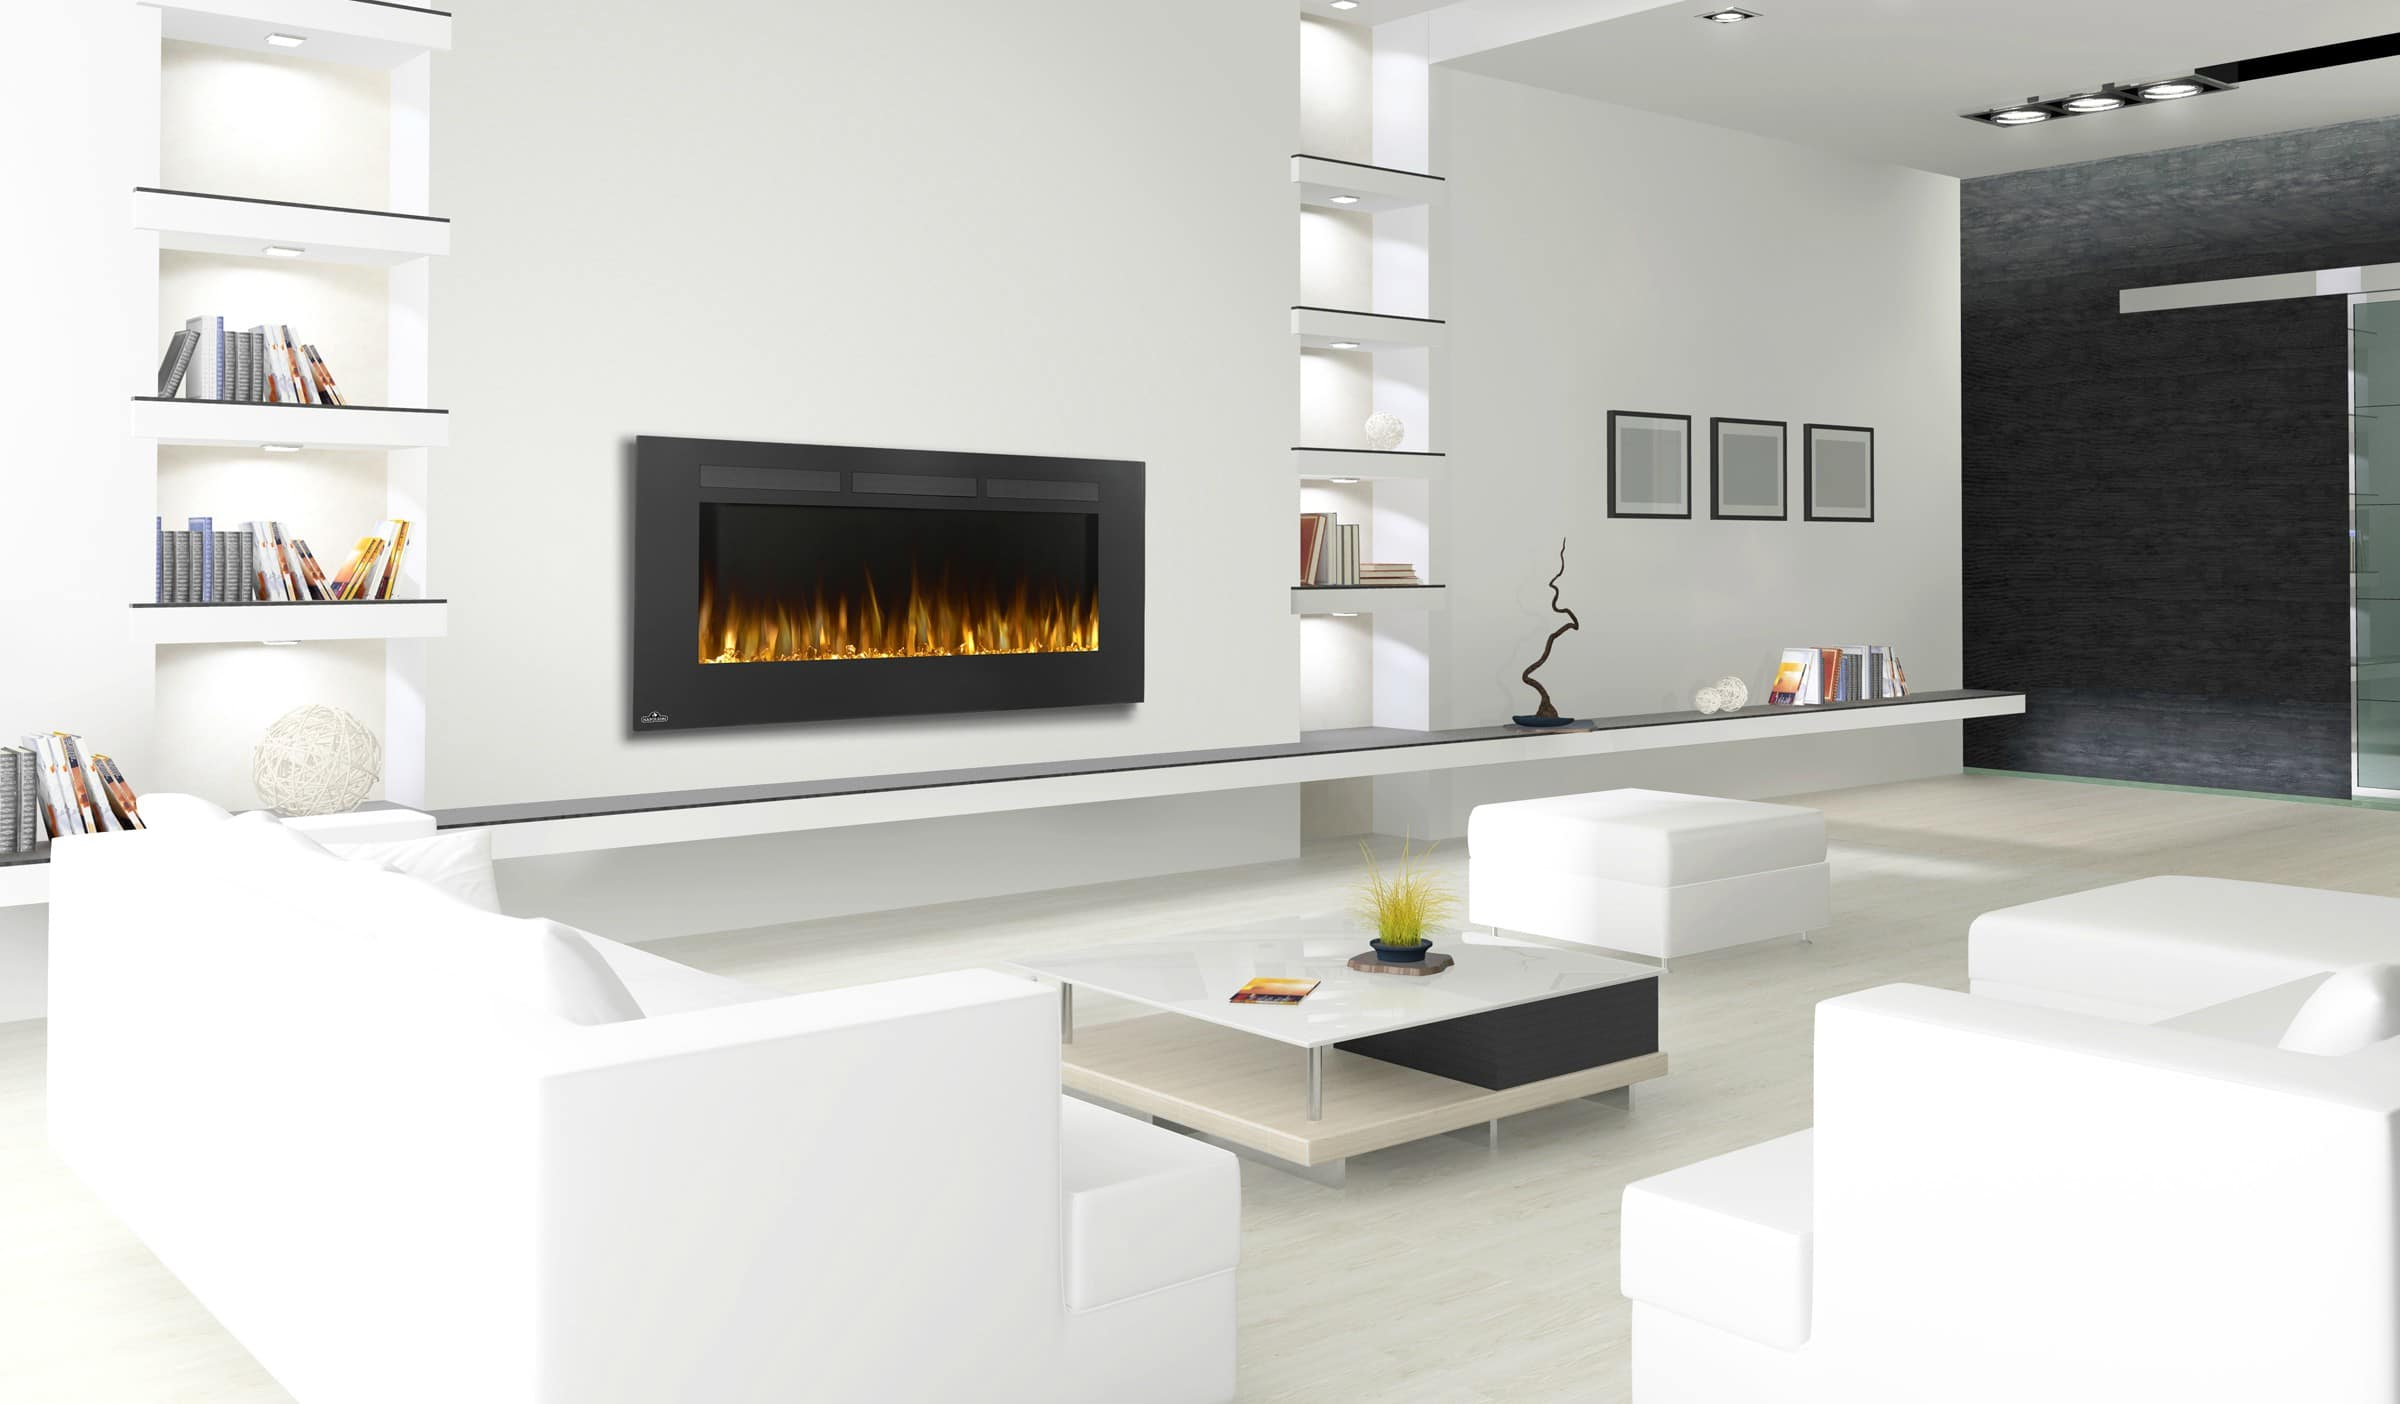 Wall Mount Electric Fireplace With Heater Allure 50 Form